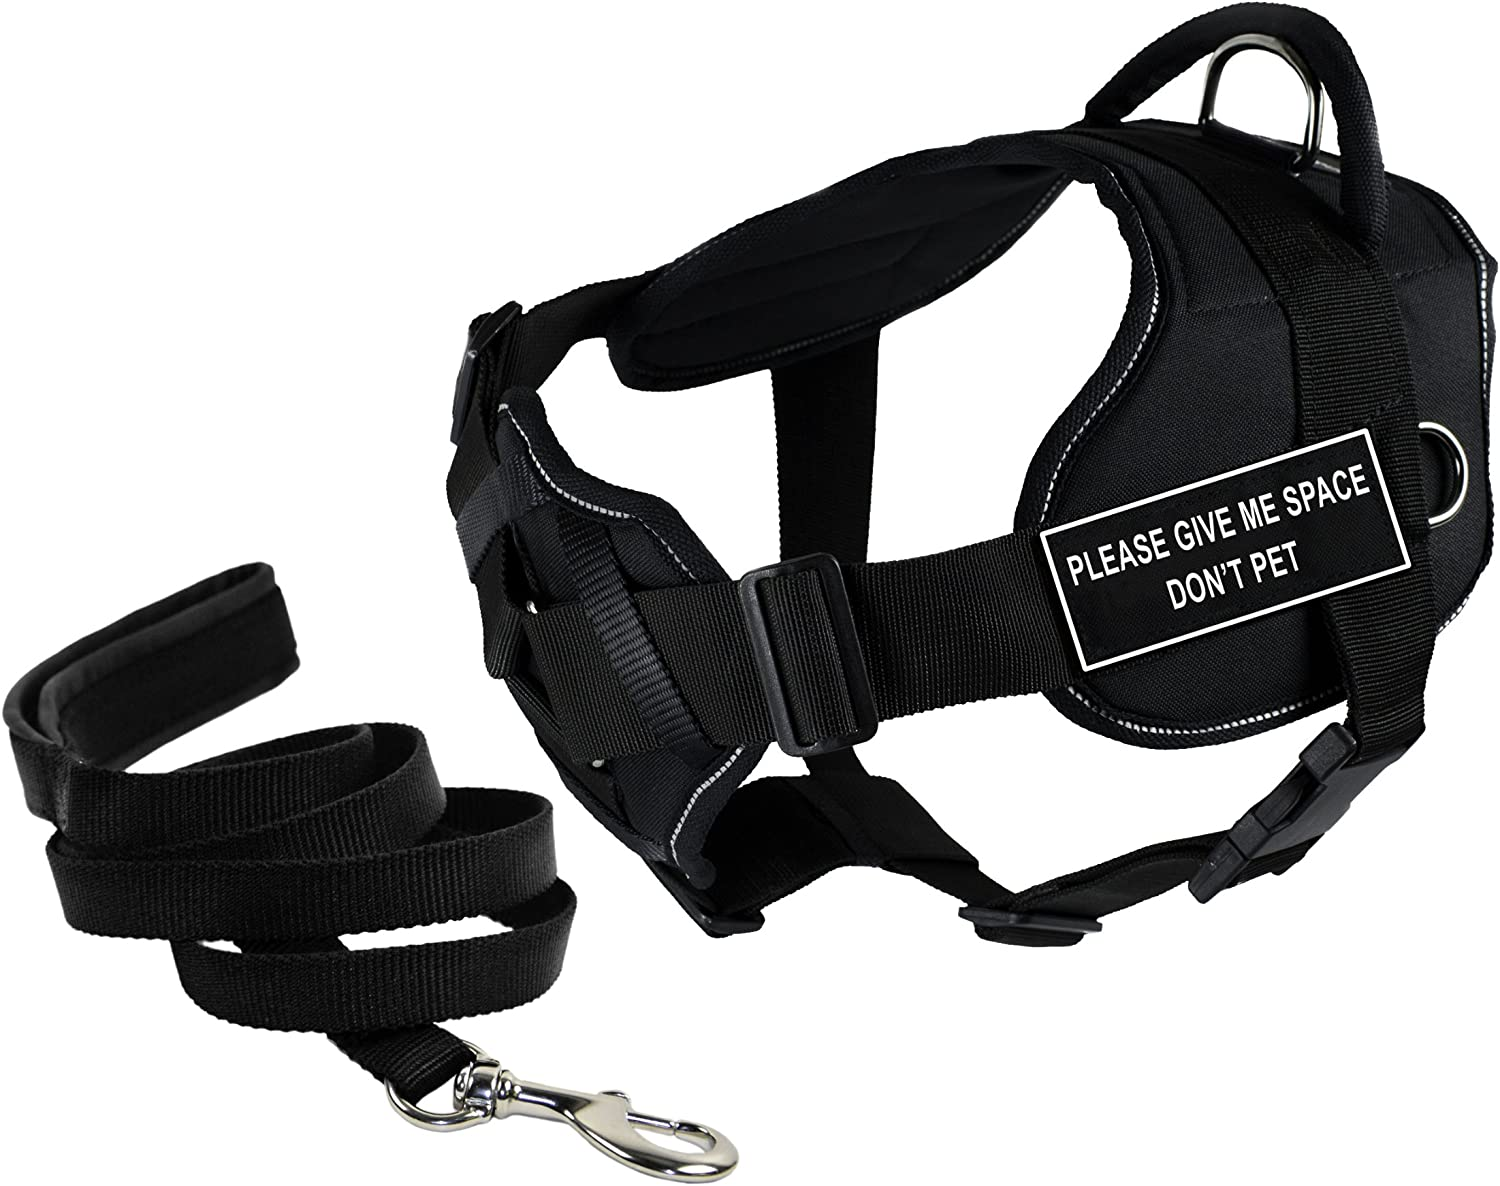 Dean & Tyler's DT Fun Chest Support PLEASE GIVE ME SPACE DO NOT PET Harness with Reflective Trim, XLarge, and 6 ft Padded Puppy Leash.